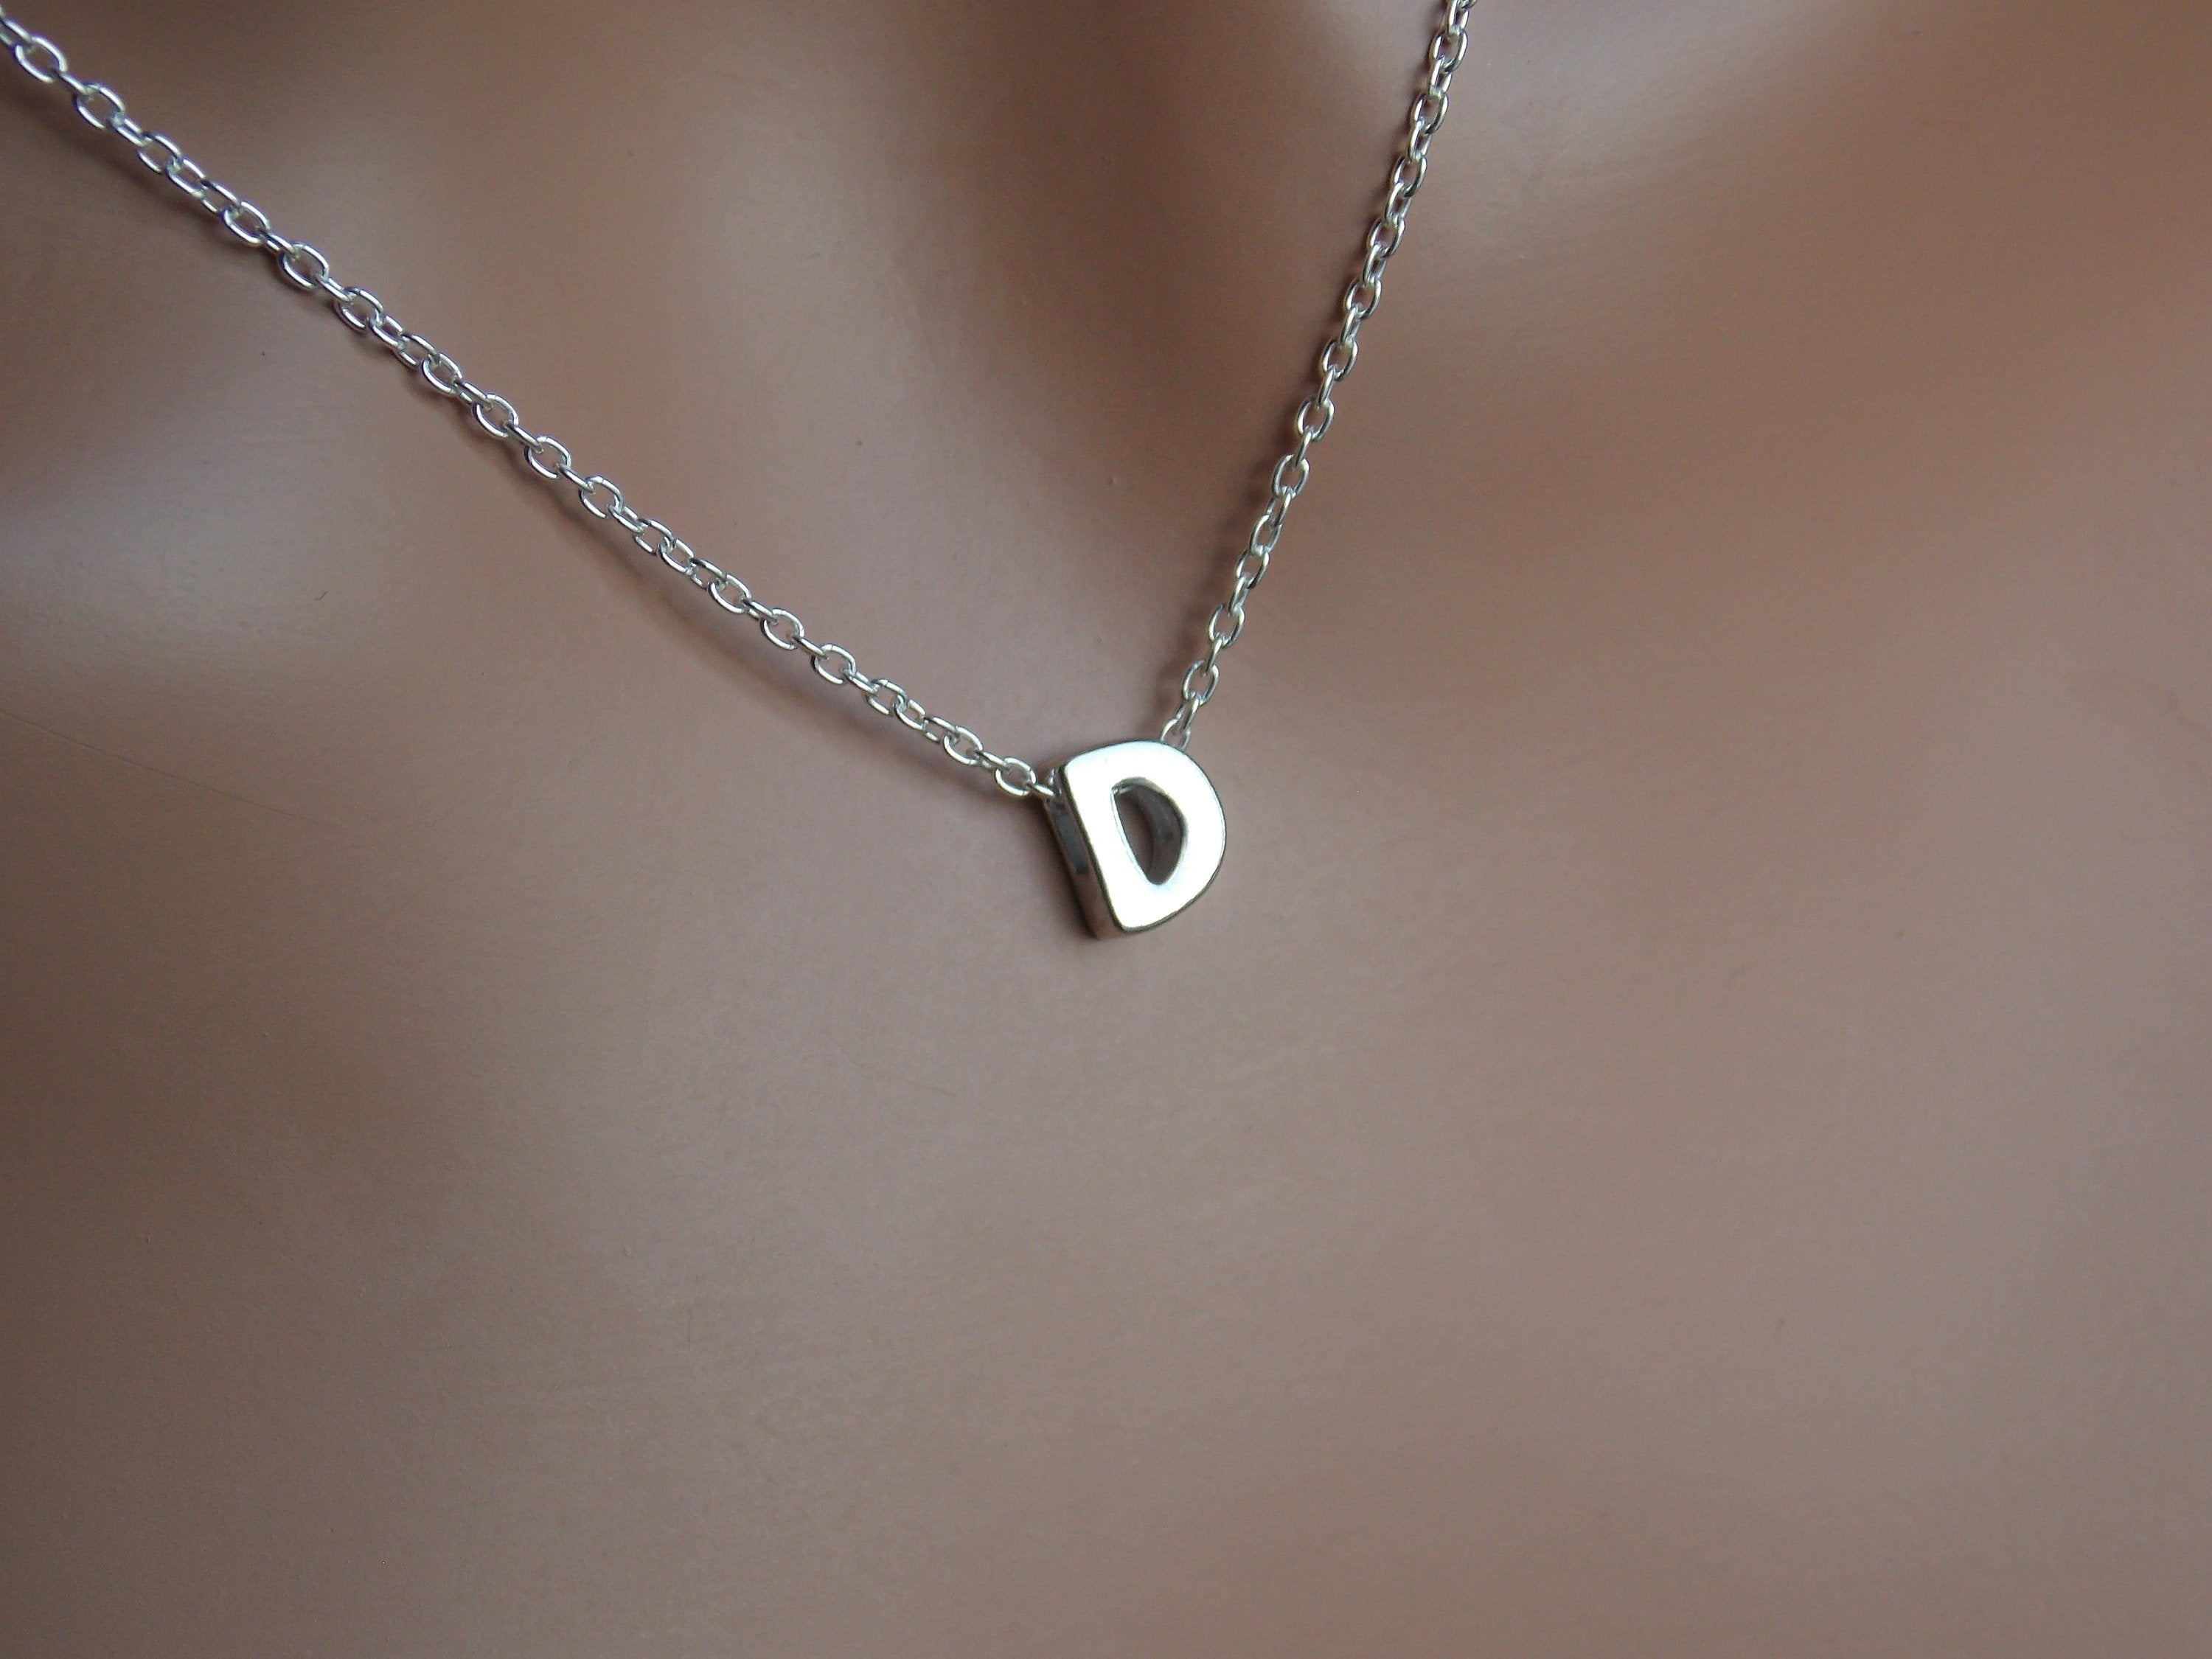 Initial D Necklace, Letter D, Letter D Necklace, Monogram D, Letter D Pendant, D Charm, D Jewelry, Alphabet, Sterling Silver D, Stampsink Intended For Best And Newest Letter C Alphabet Locket Element Necklaces (View 6 of 25)